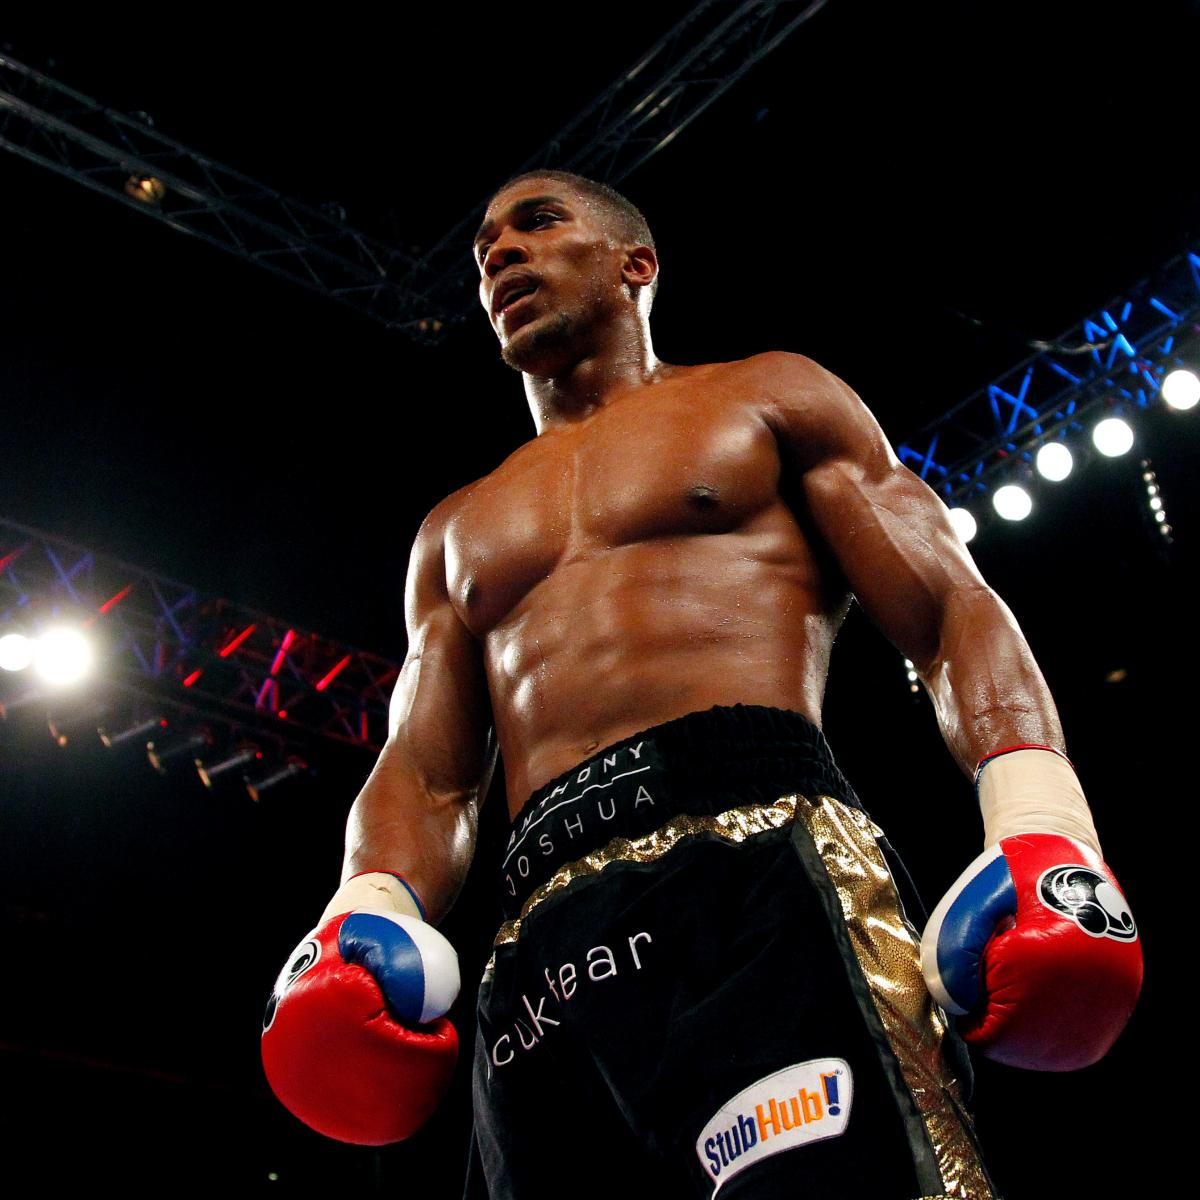 Anthony Joshua Vs. Michael Sprott: Fight Time, Date, Live